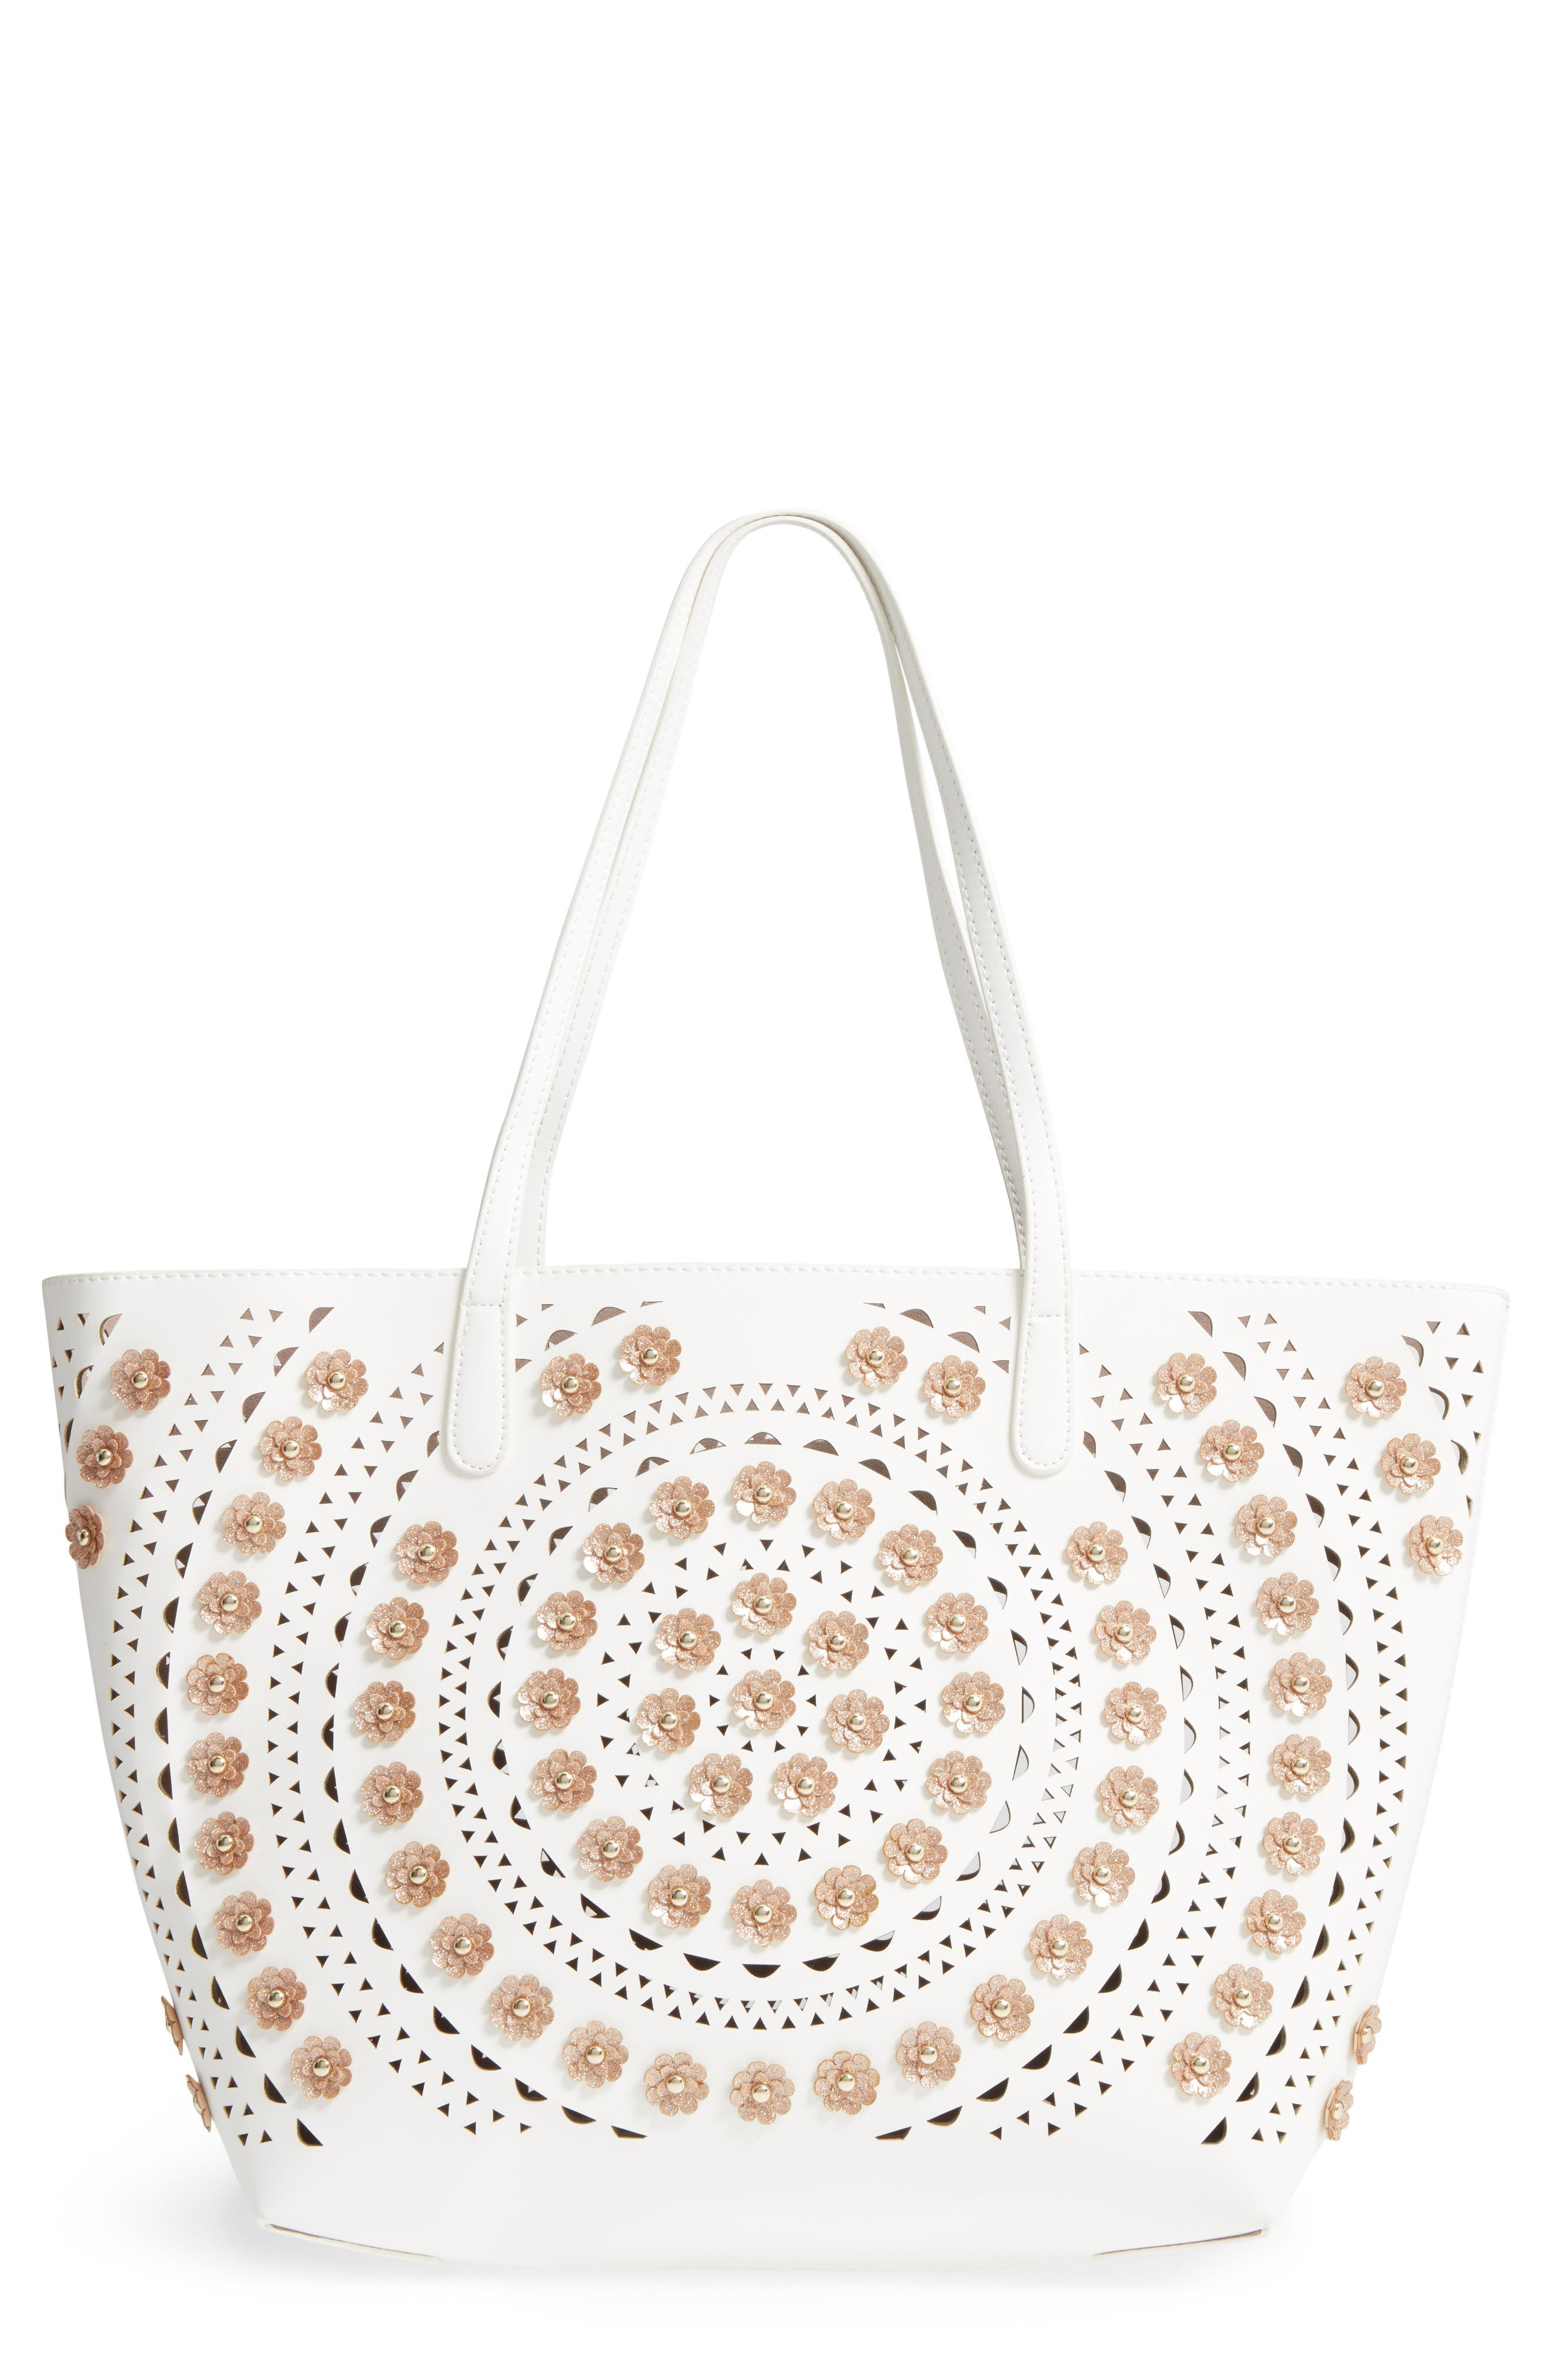 Sondra Roberts Perforated Glitter Flower Faux Leather Tote